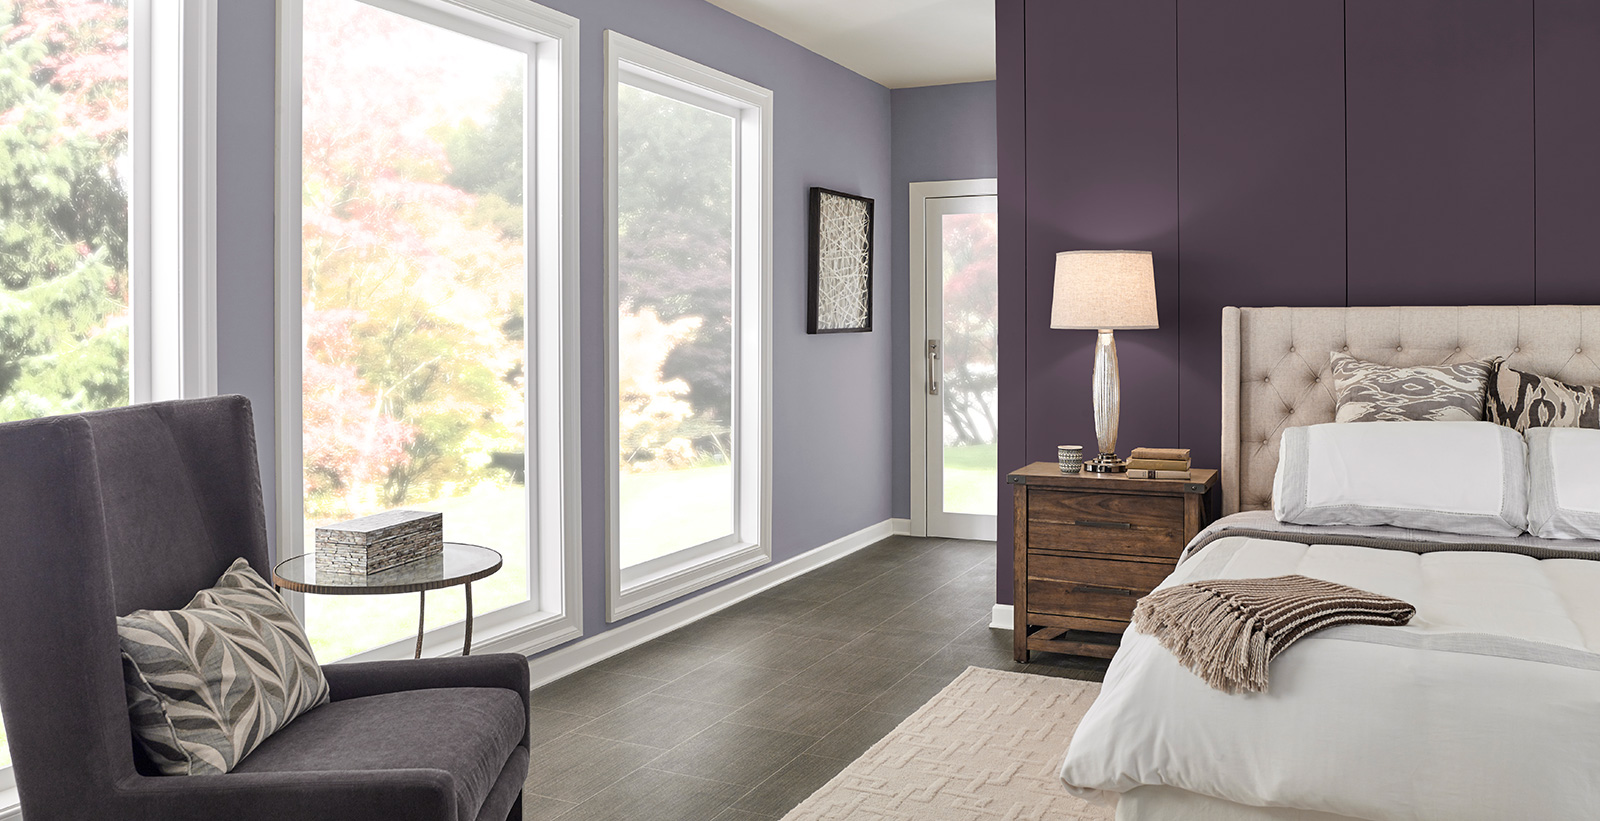 Formal styled bedroom with light purple on main walls, dark purple on accent wall, white on trim and ceiling, and tufted headboard